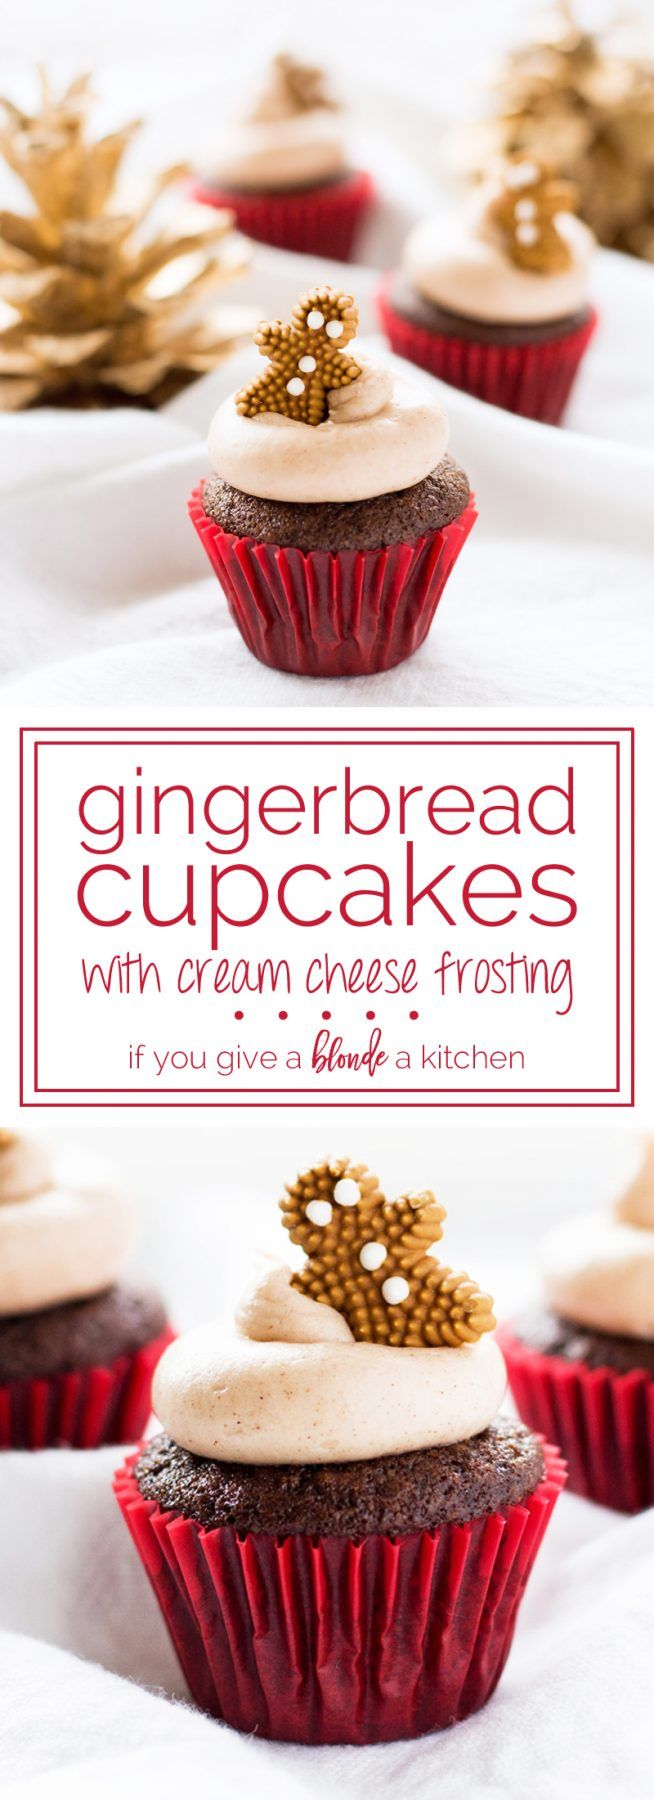 Gingerbread cupcakes are full of flavor with ginger spiced cake and sweet cinnamon cream cheese frosting. The mini size is perfect for holiday parties!